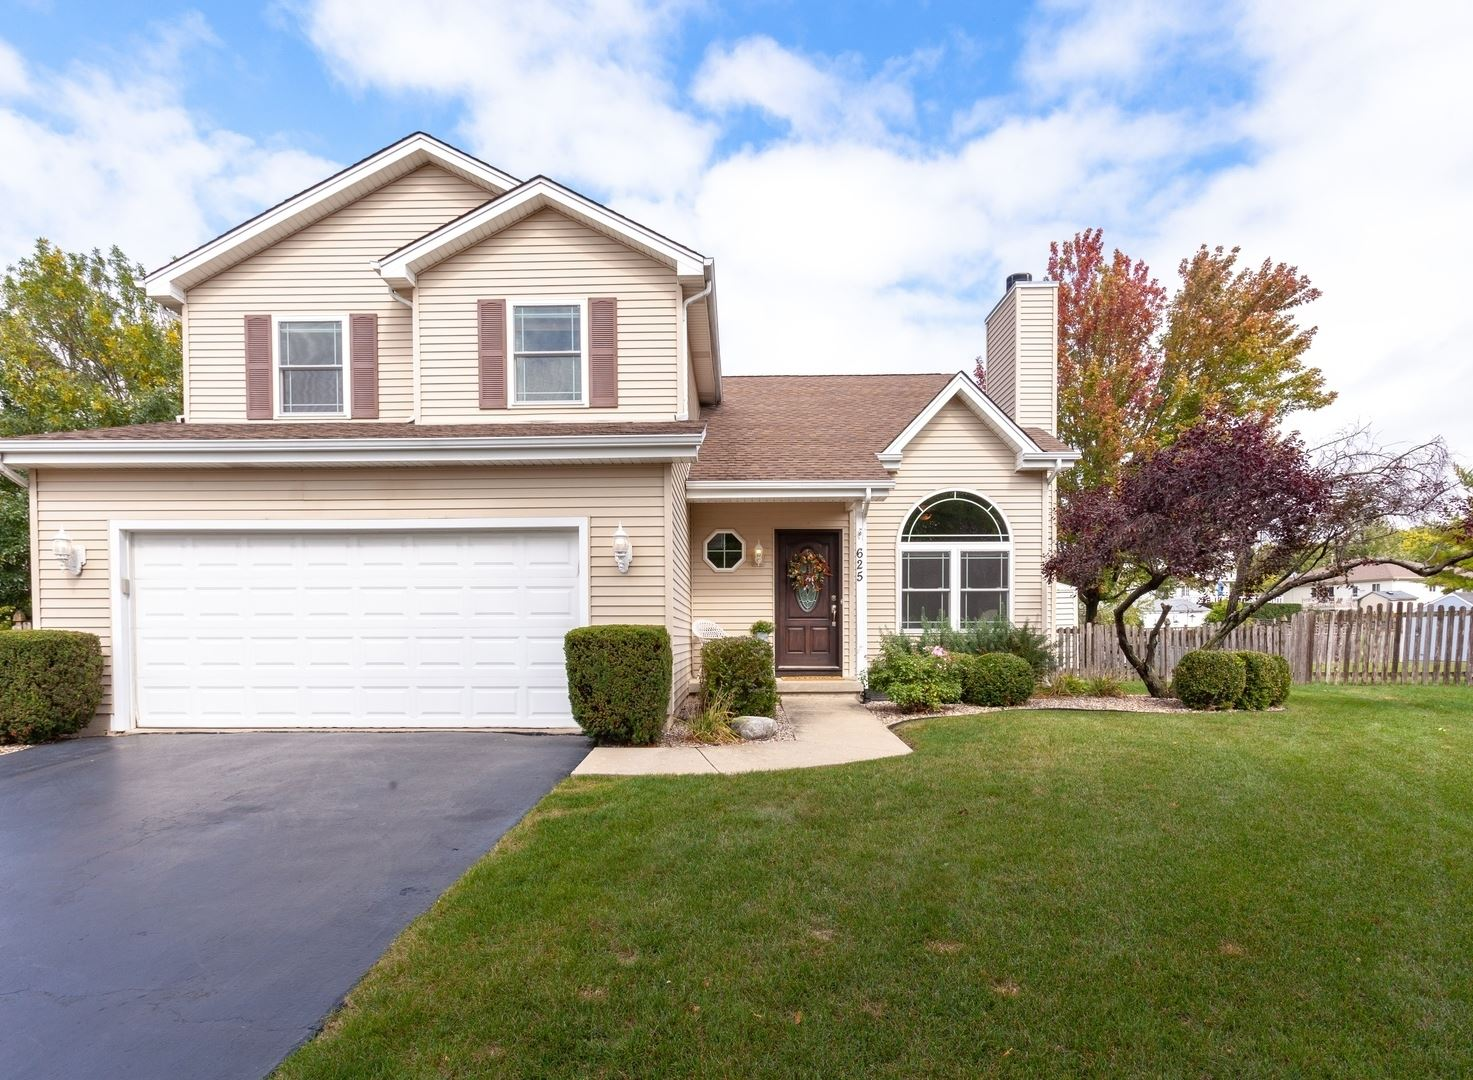 Photo of 625 Coneflower Court, Romeoville, IL 60446 (MLS # 10881983)